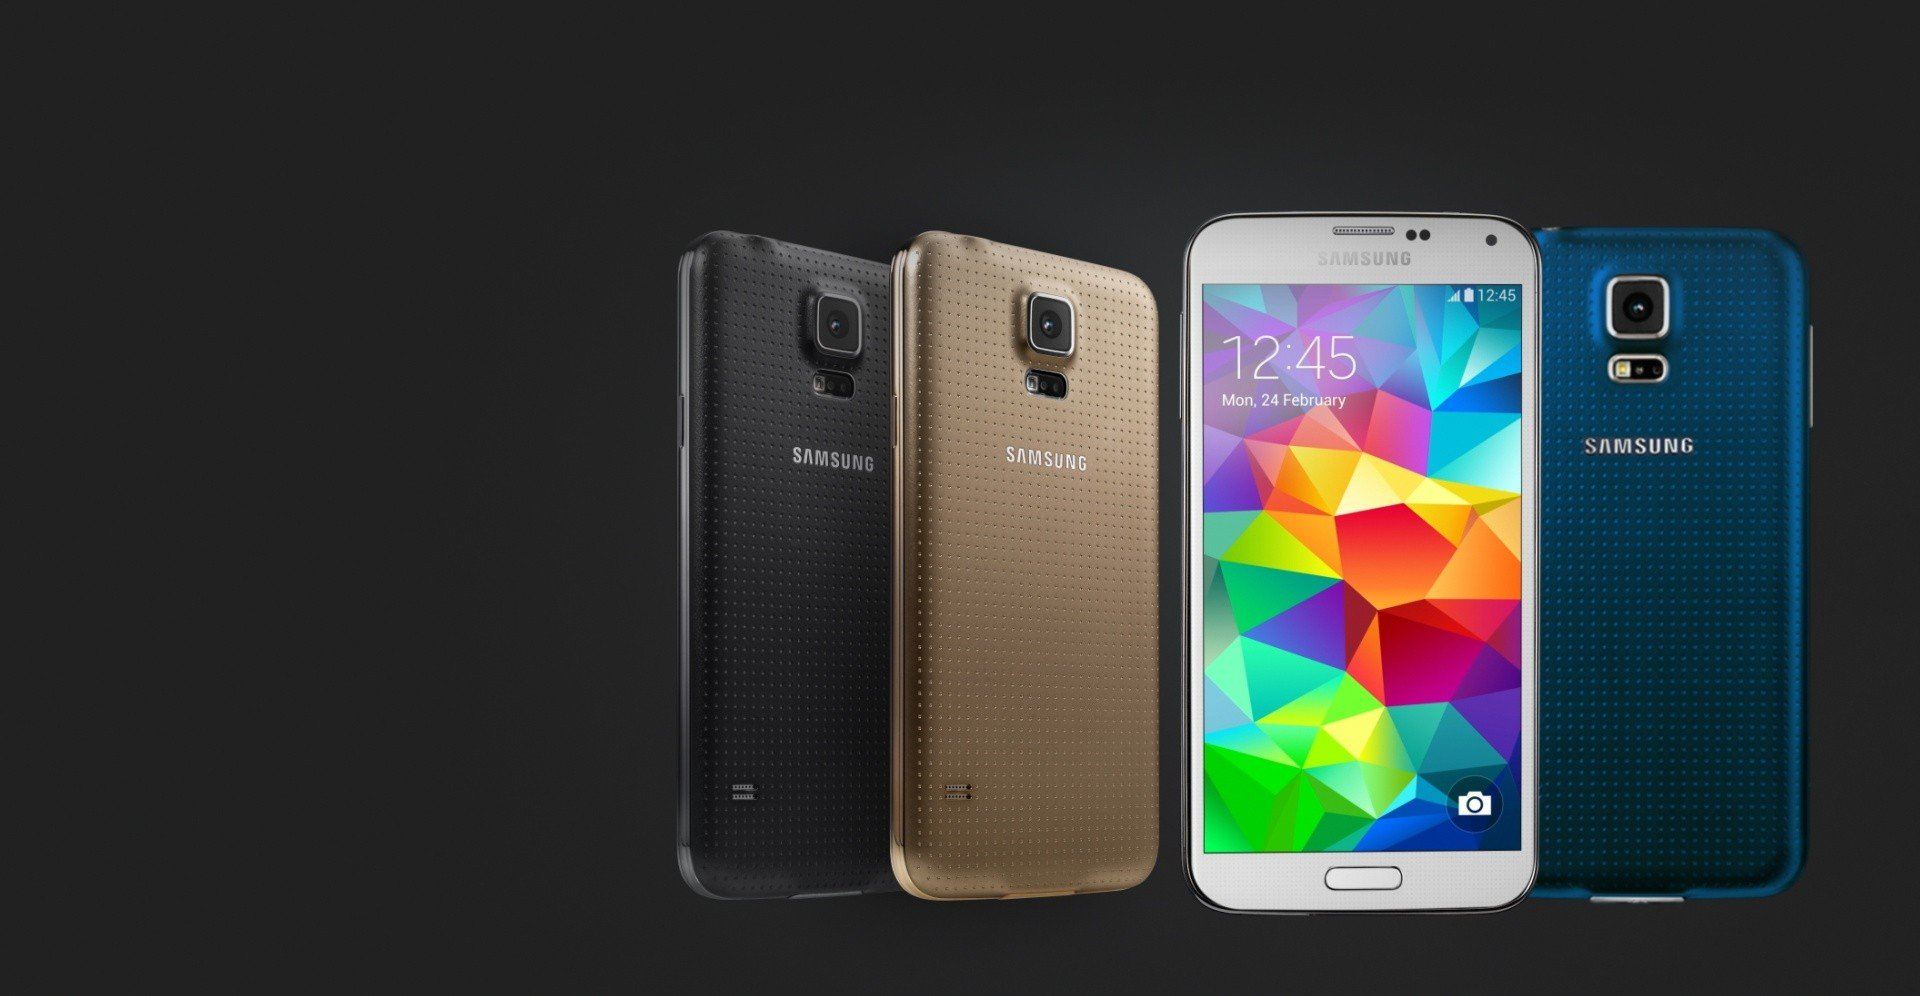 Samsung Galaxy S5 Plus - images